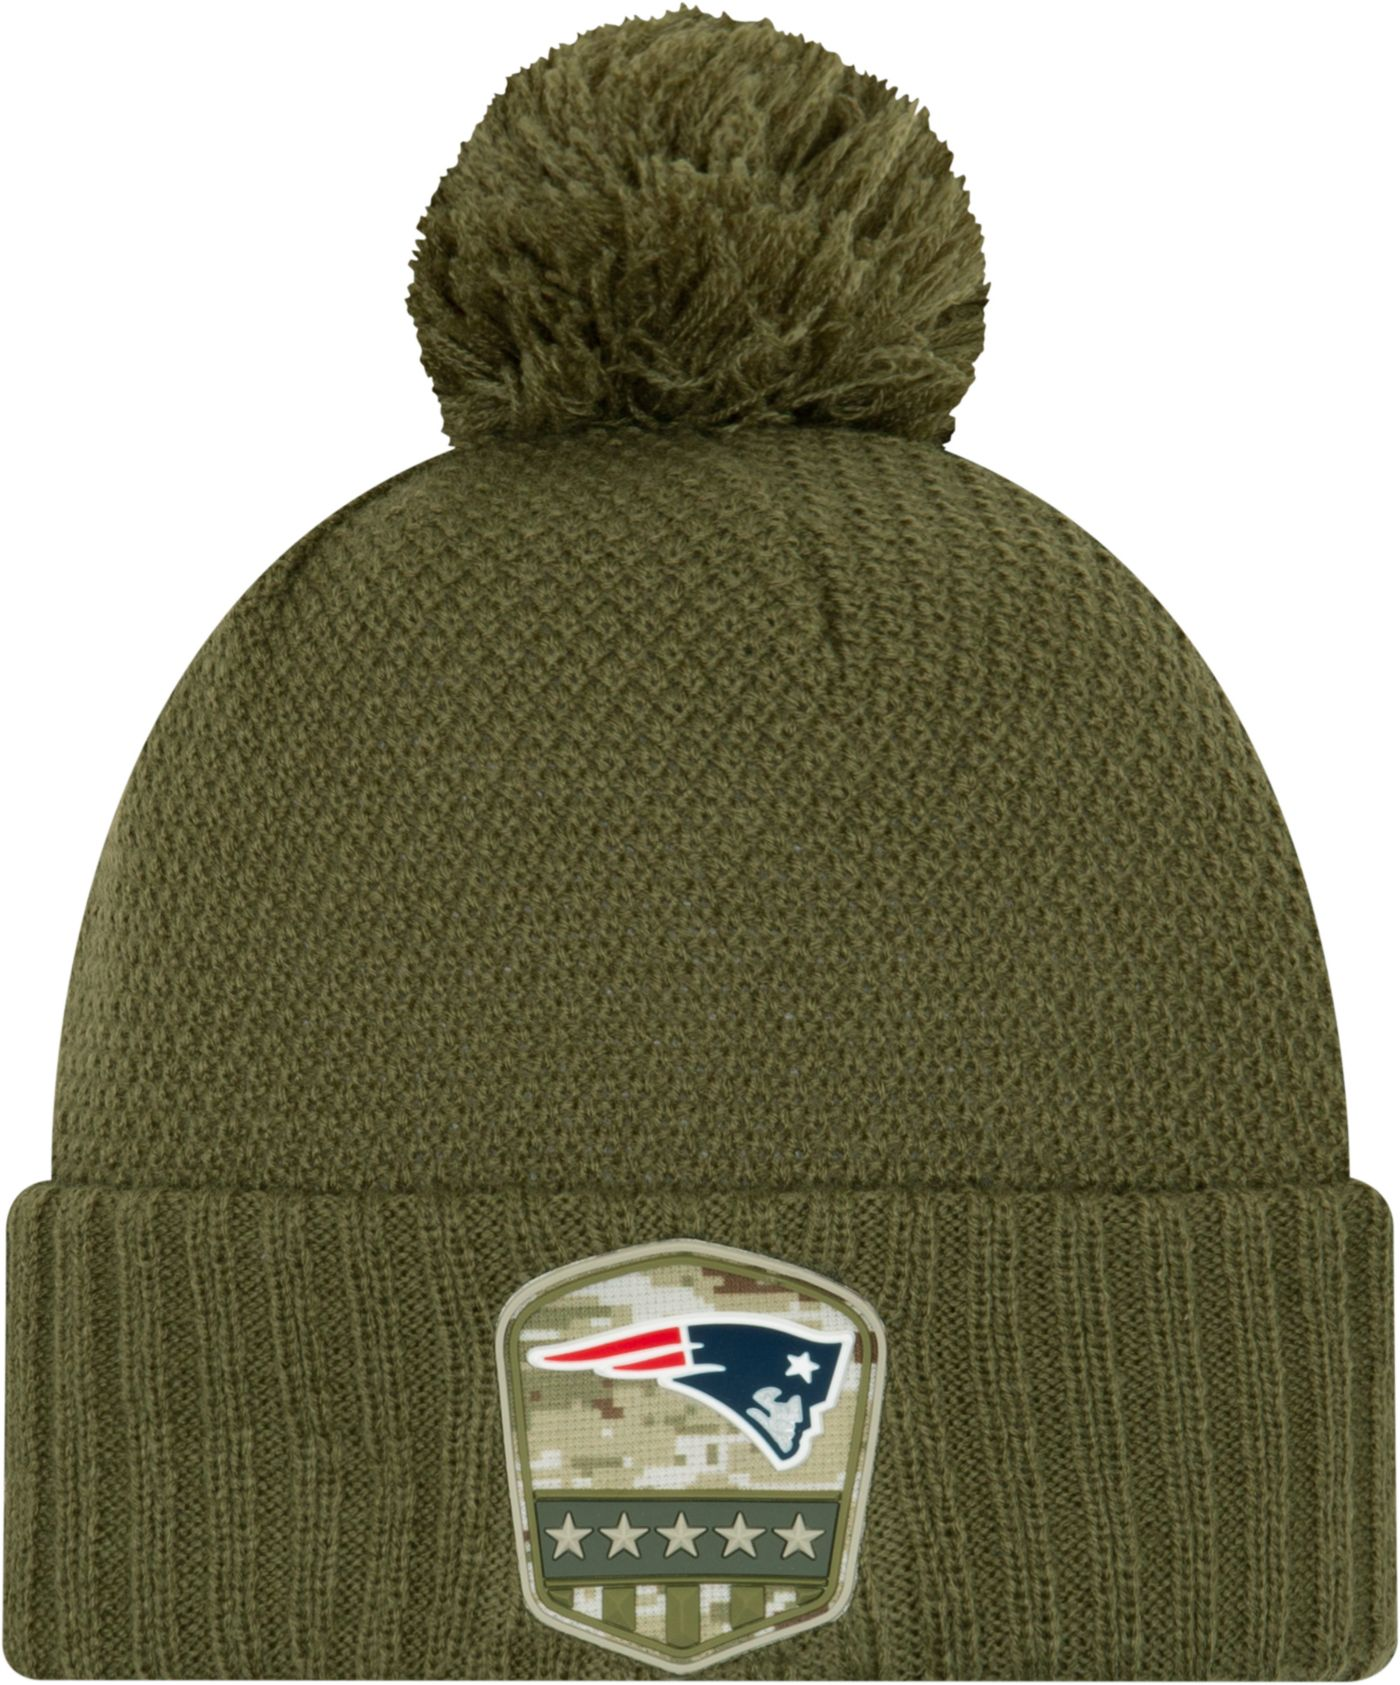 New Era Women's Salute to Service New England Patriots Olive Cuffed Pom Knit